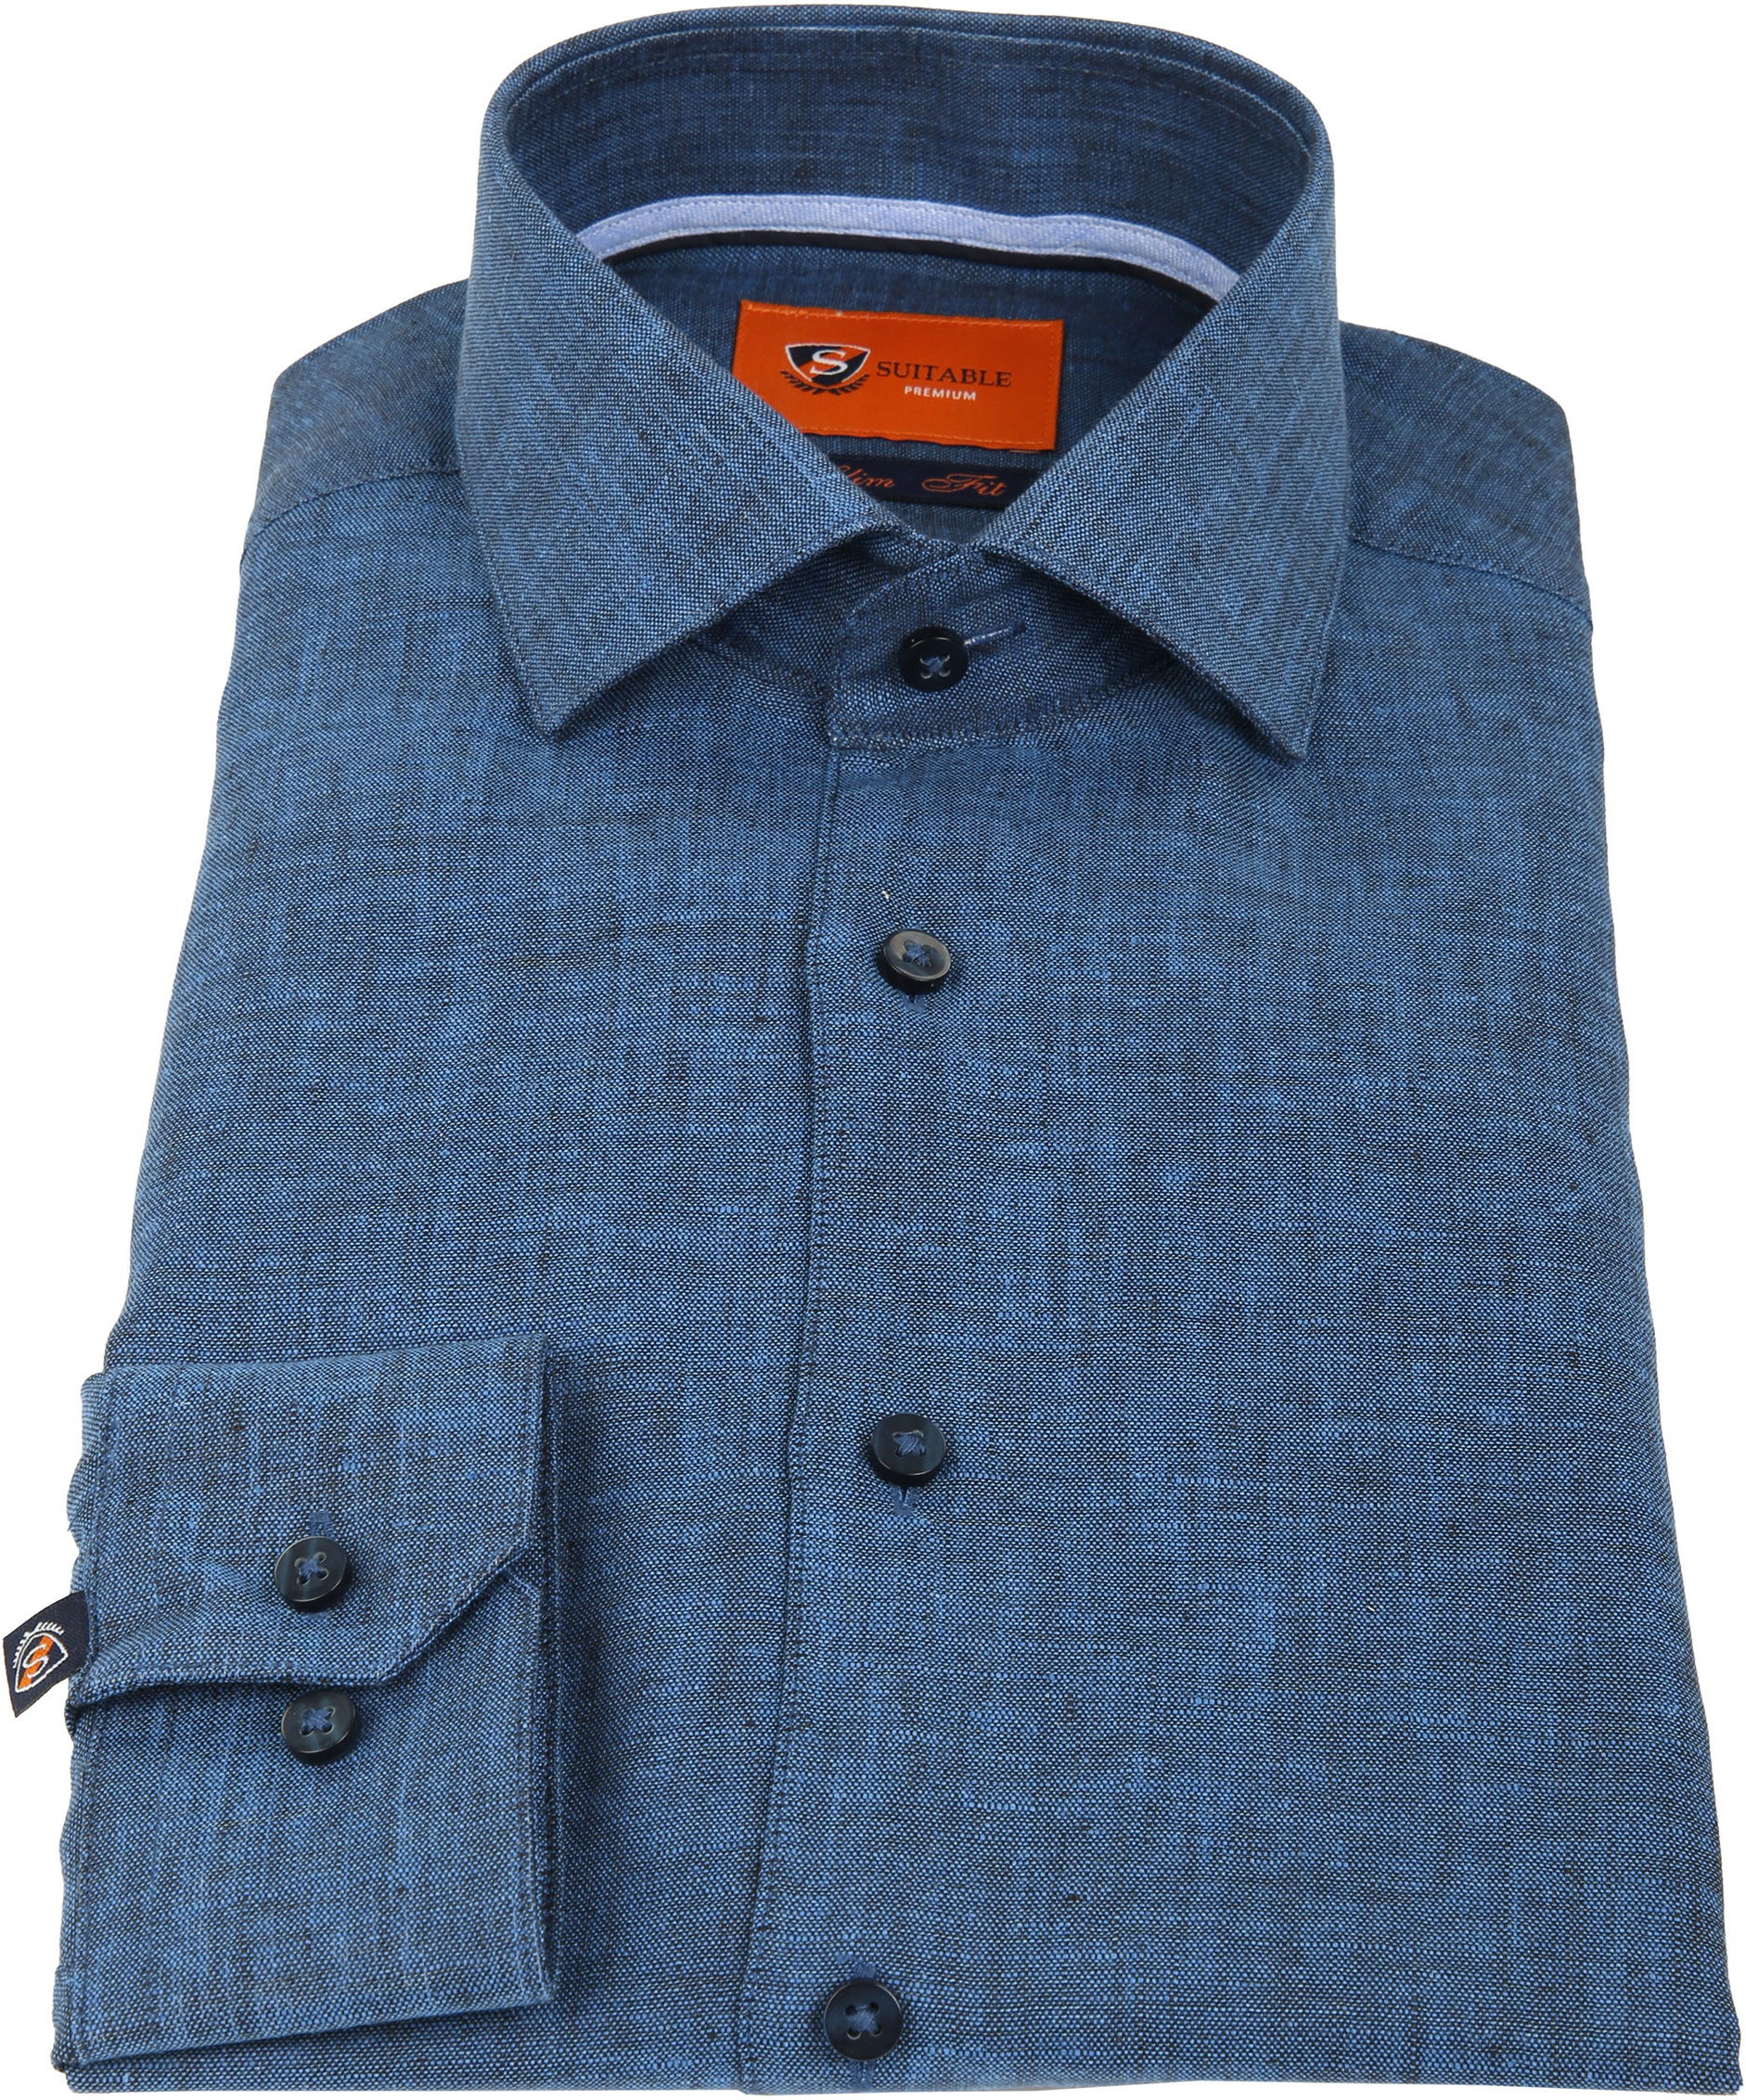 Suitable Shirt Linen Navy D81-11 foto 2